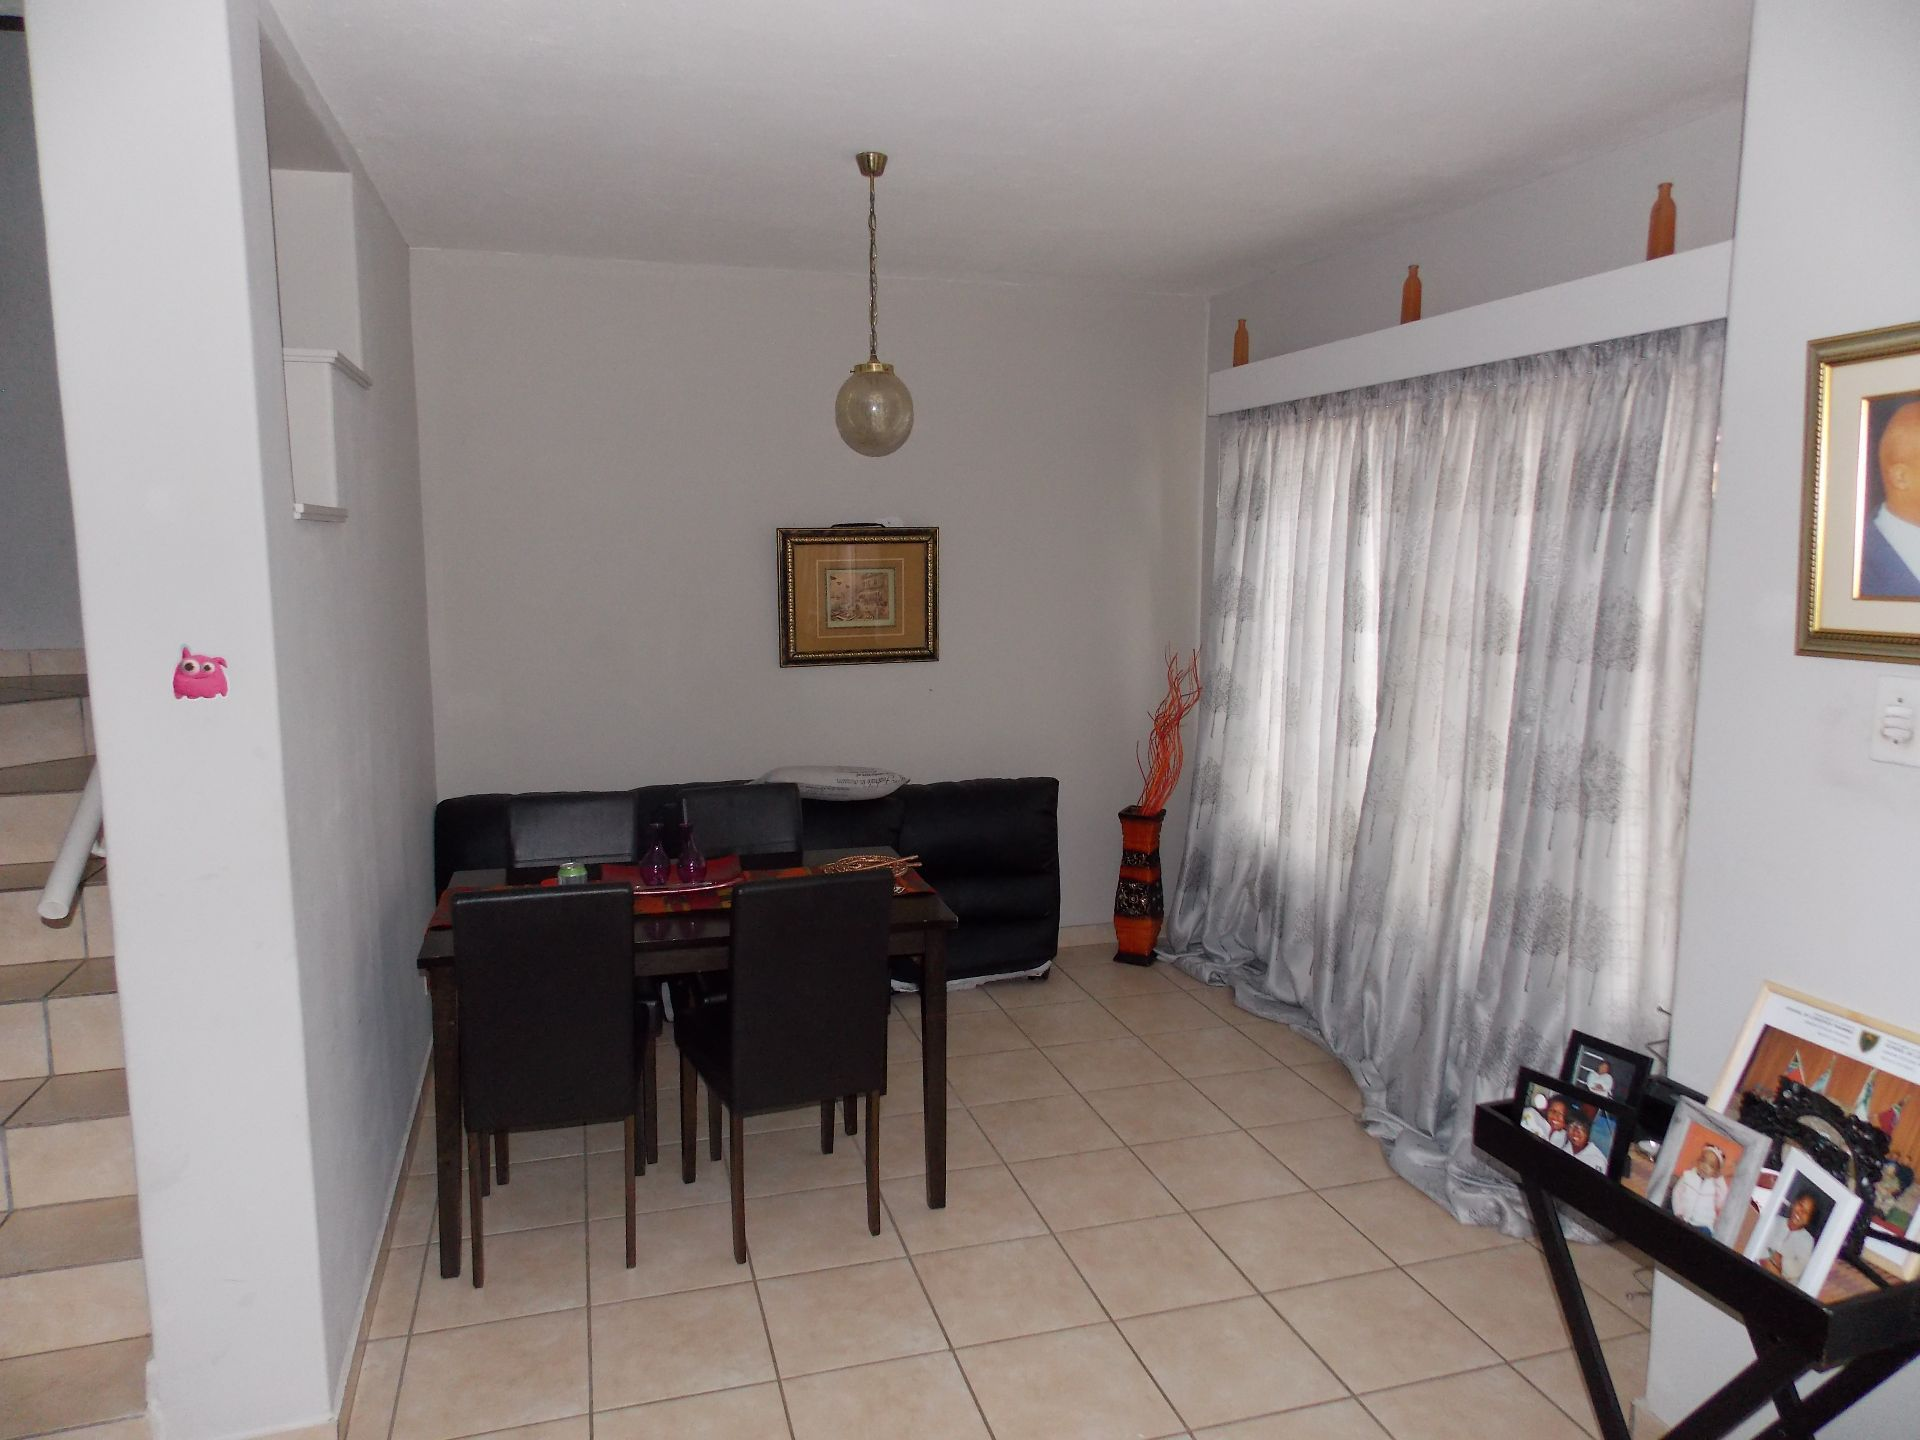 Potchefstroom Central property for sale. Ref No: 13414401. Picture no 6